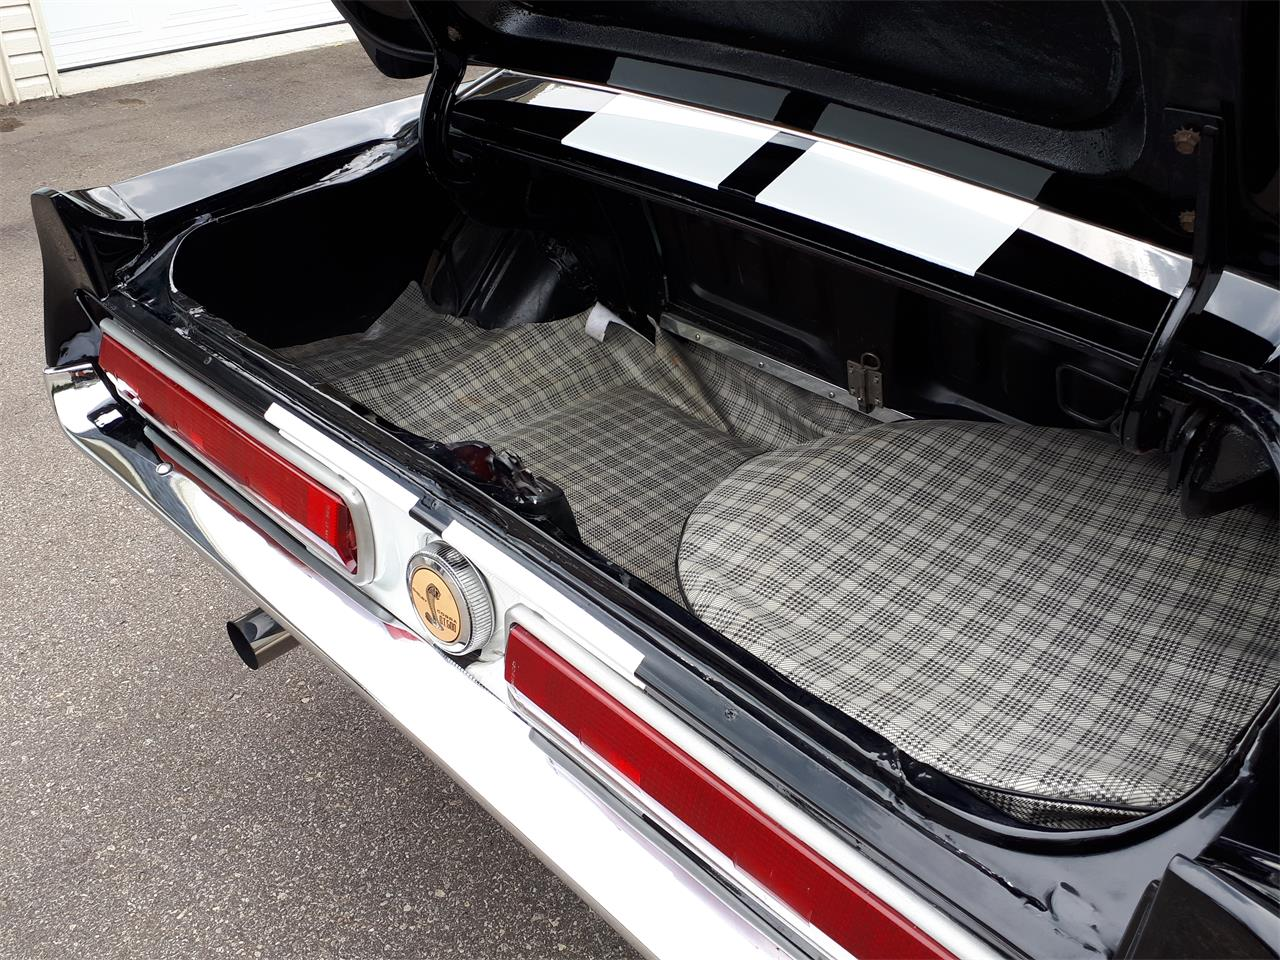 Large Picture of Classic 1967 Mustang located in Quebec - $57,000.00 Offered by a Private Seller - QH2P